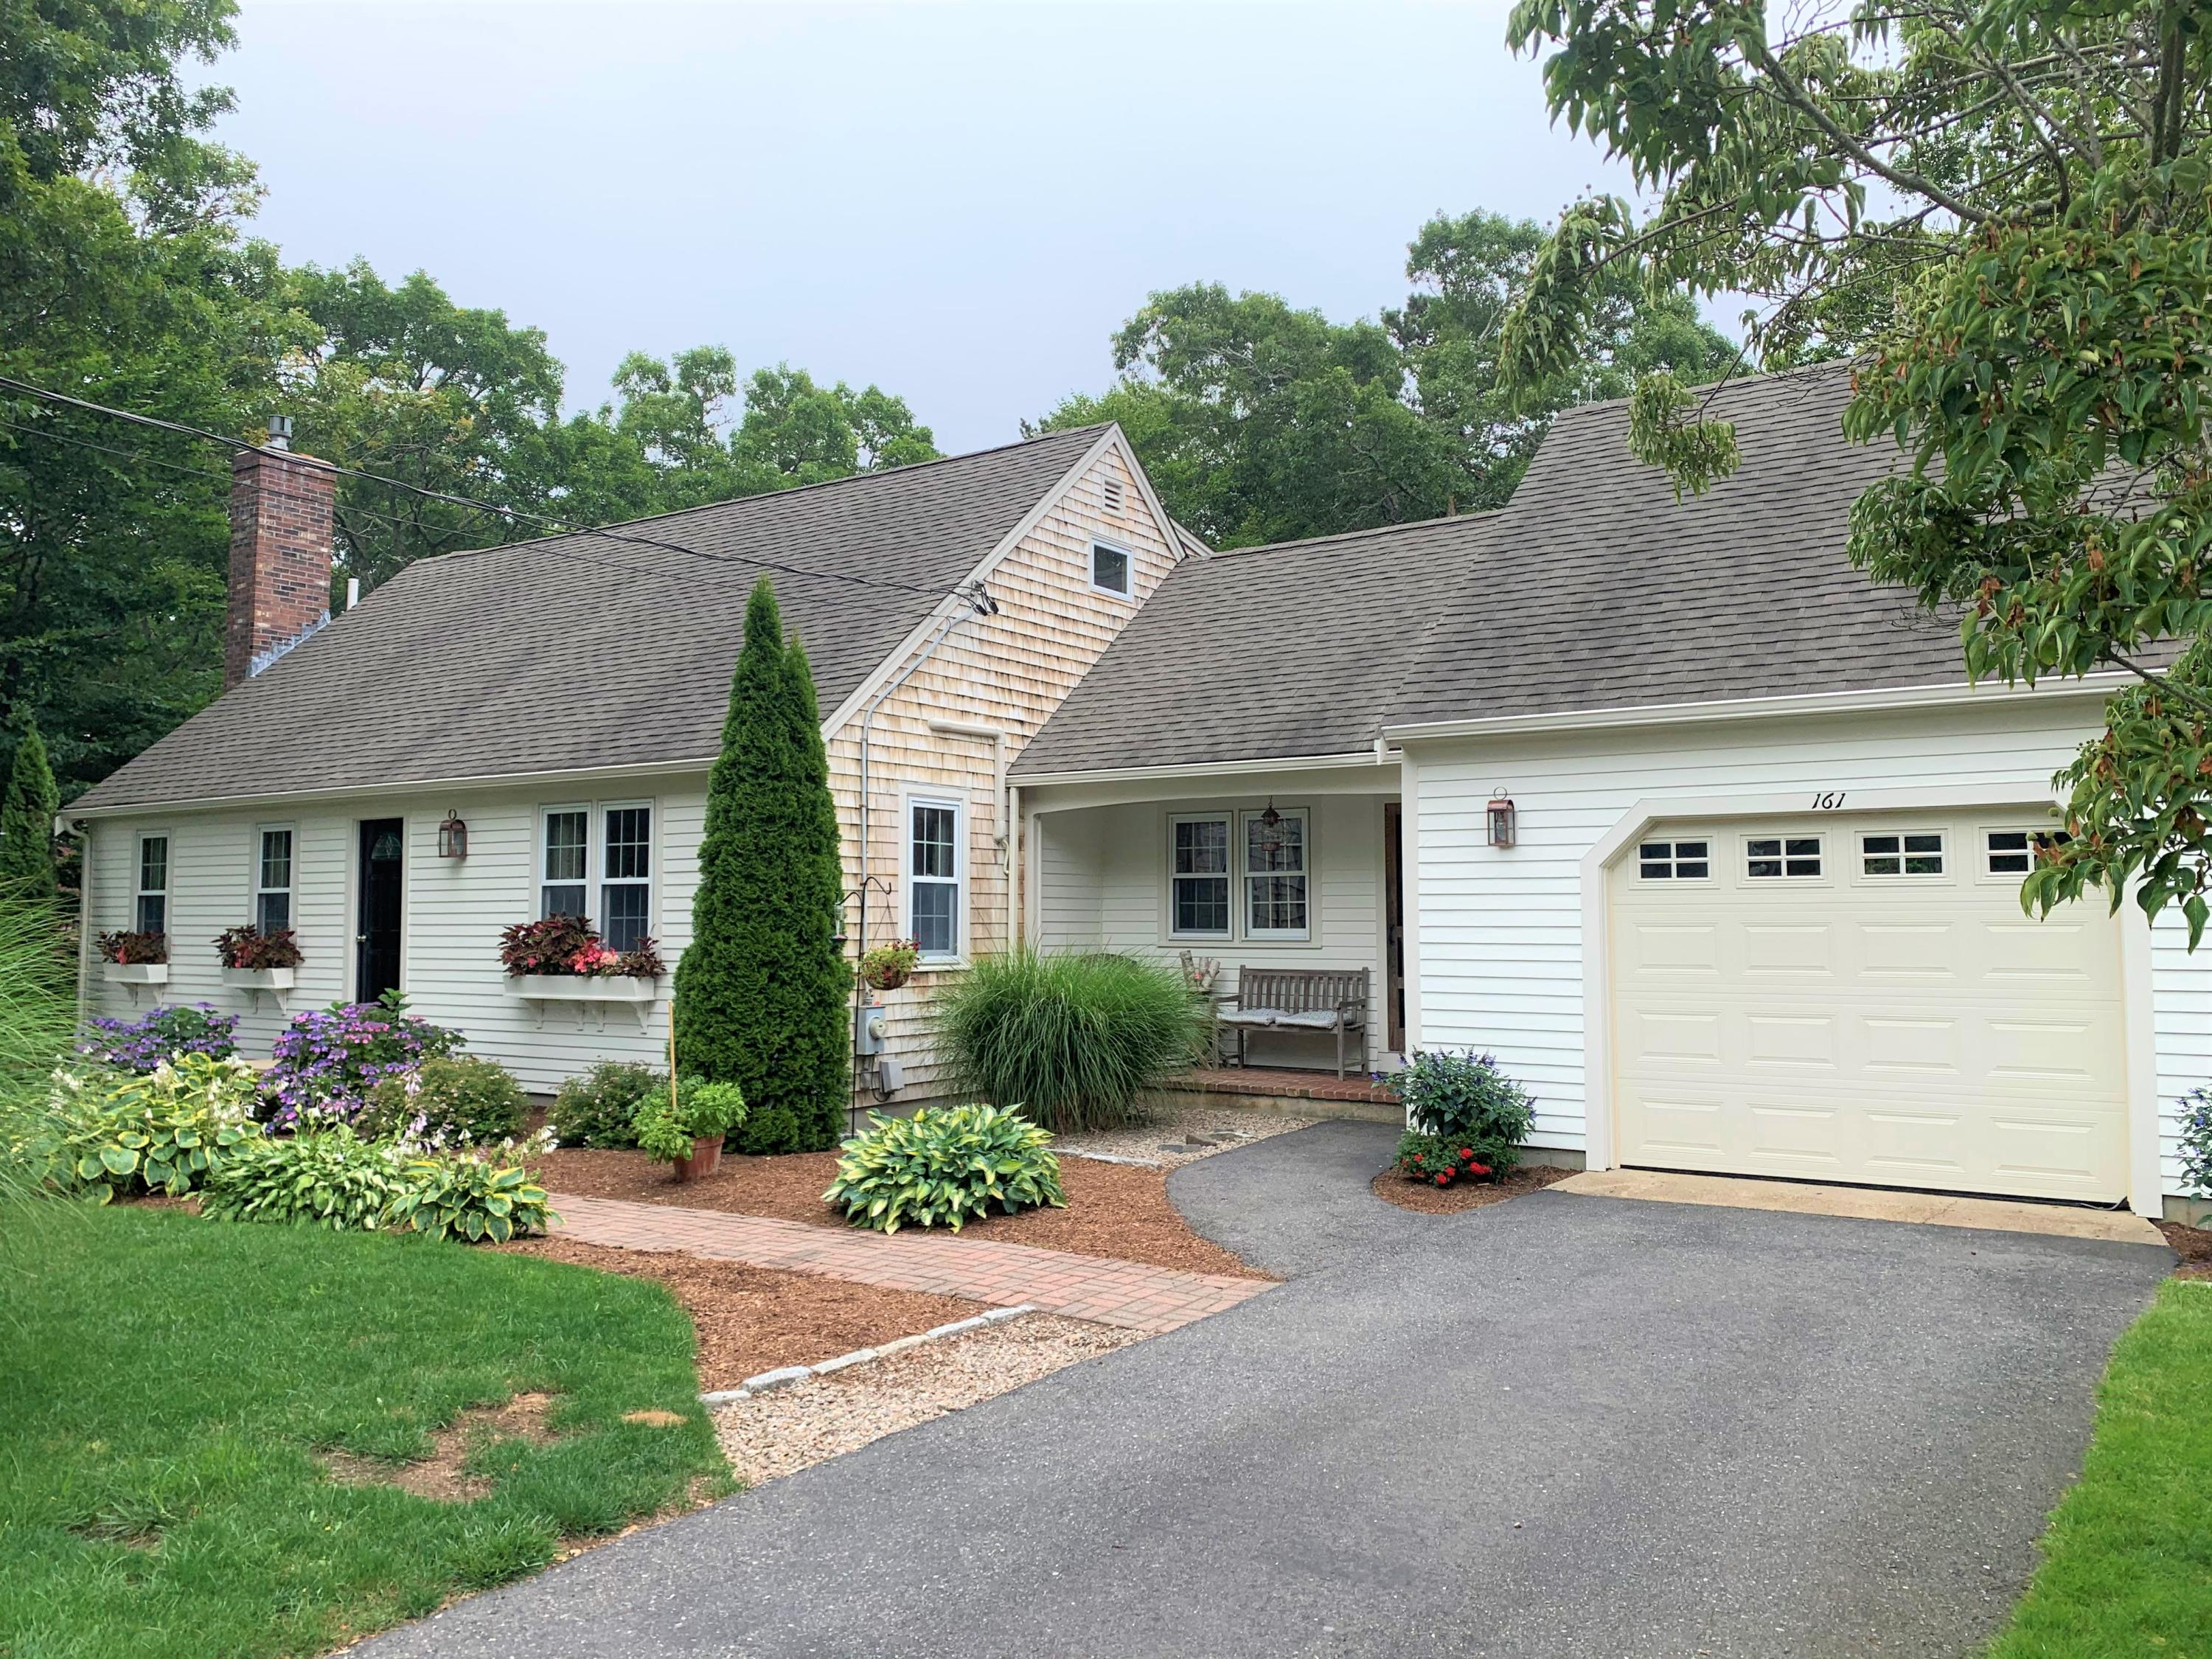 161 Beechtree Drive, Brewster MA, 02631 sales details